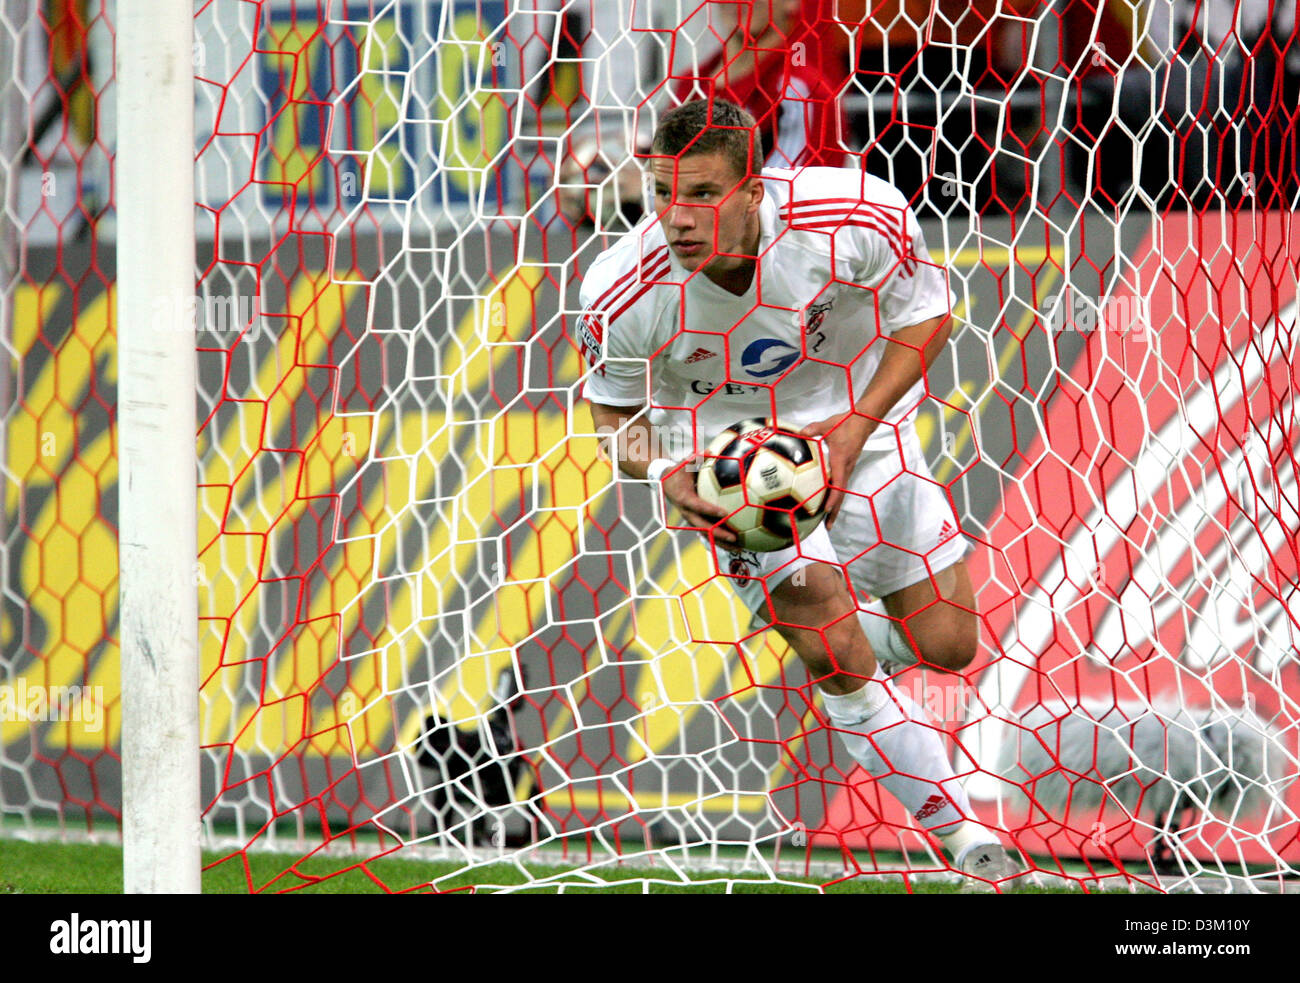 (dpa) - German international Lukas Podolski of Cologne fetches the ball after his team mate Albert Streit scored - Stock Image